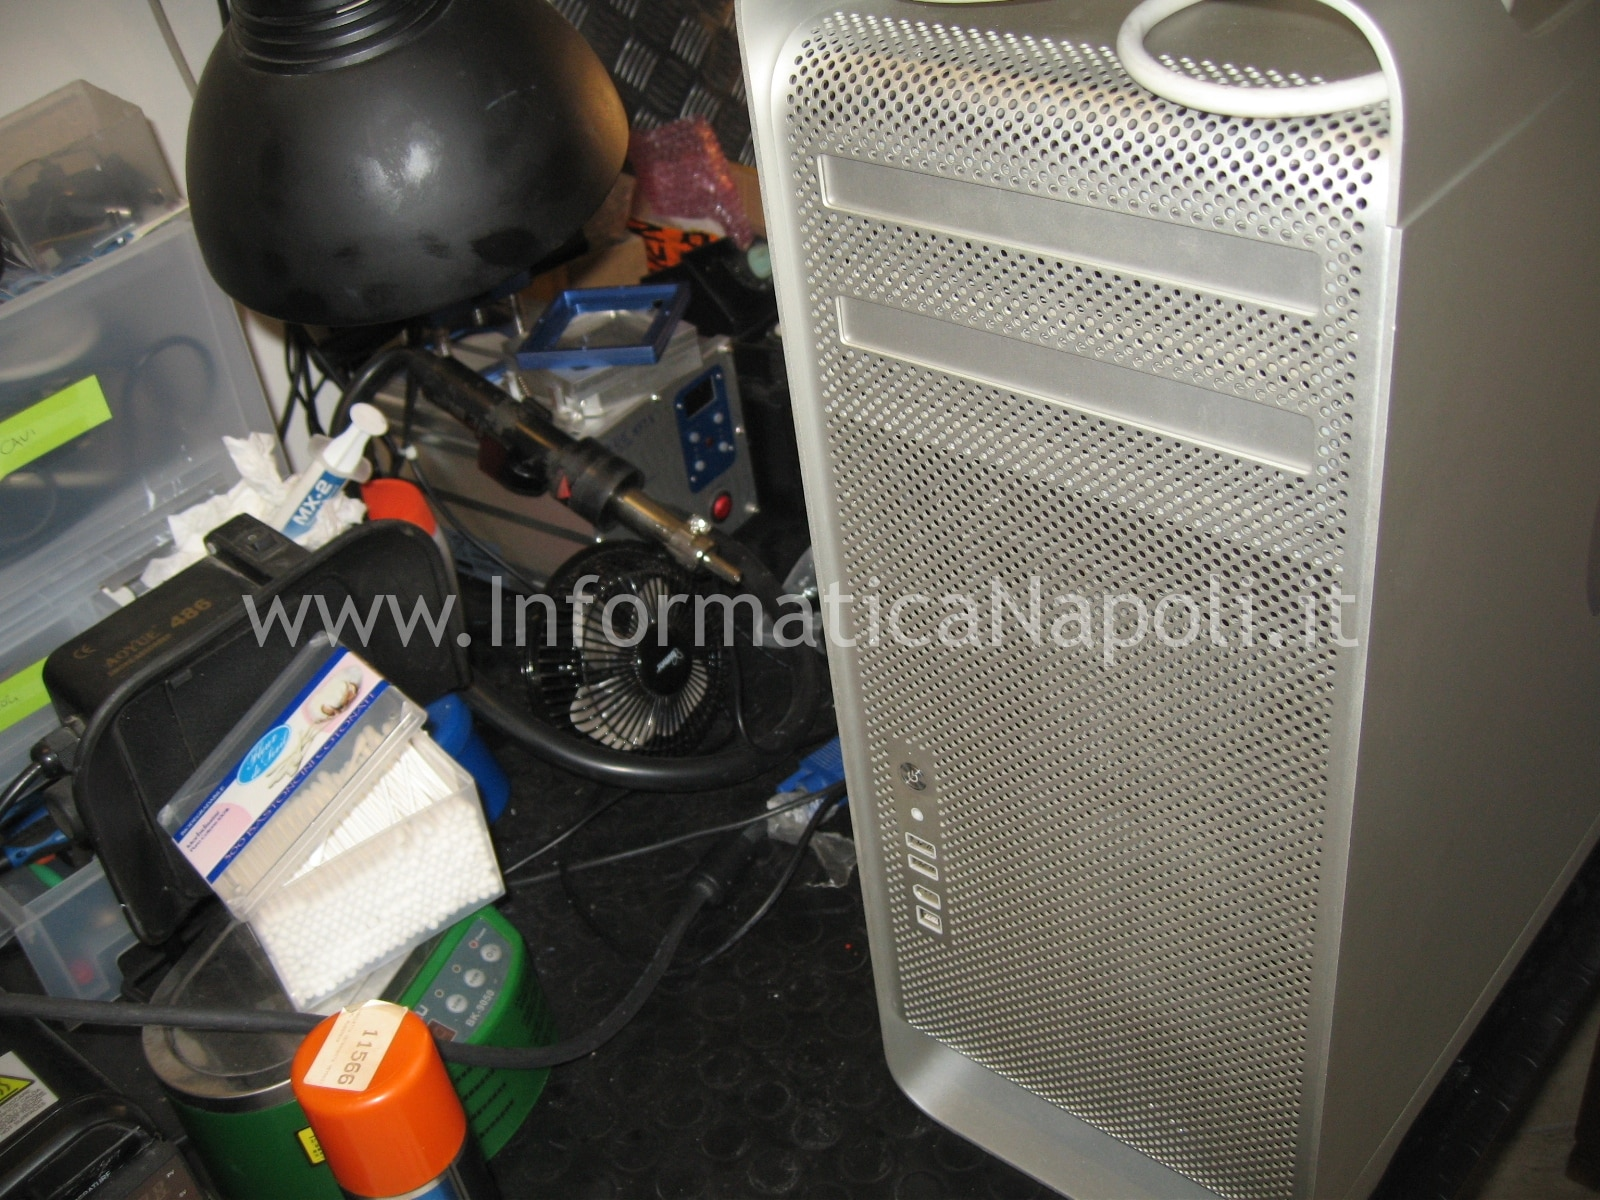 Apple Mac Pro A1186 EMC 2113